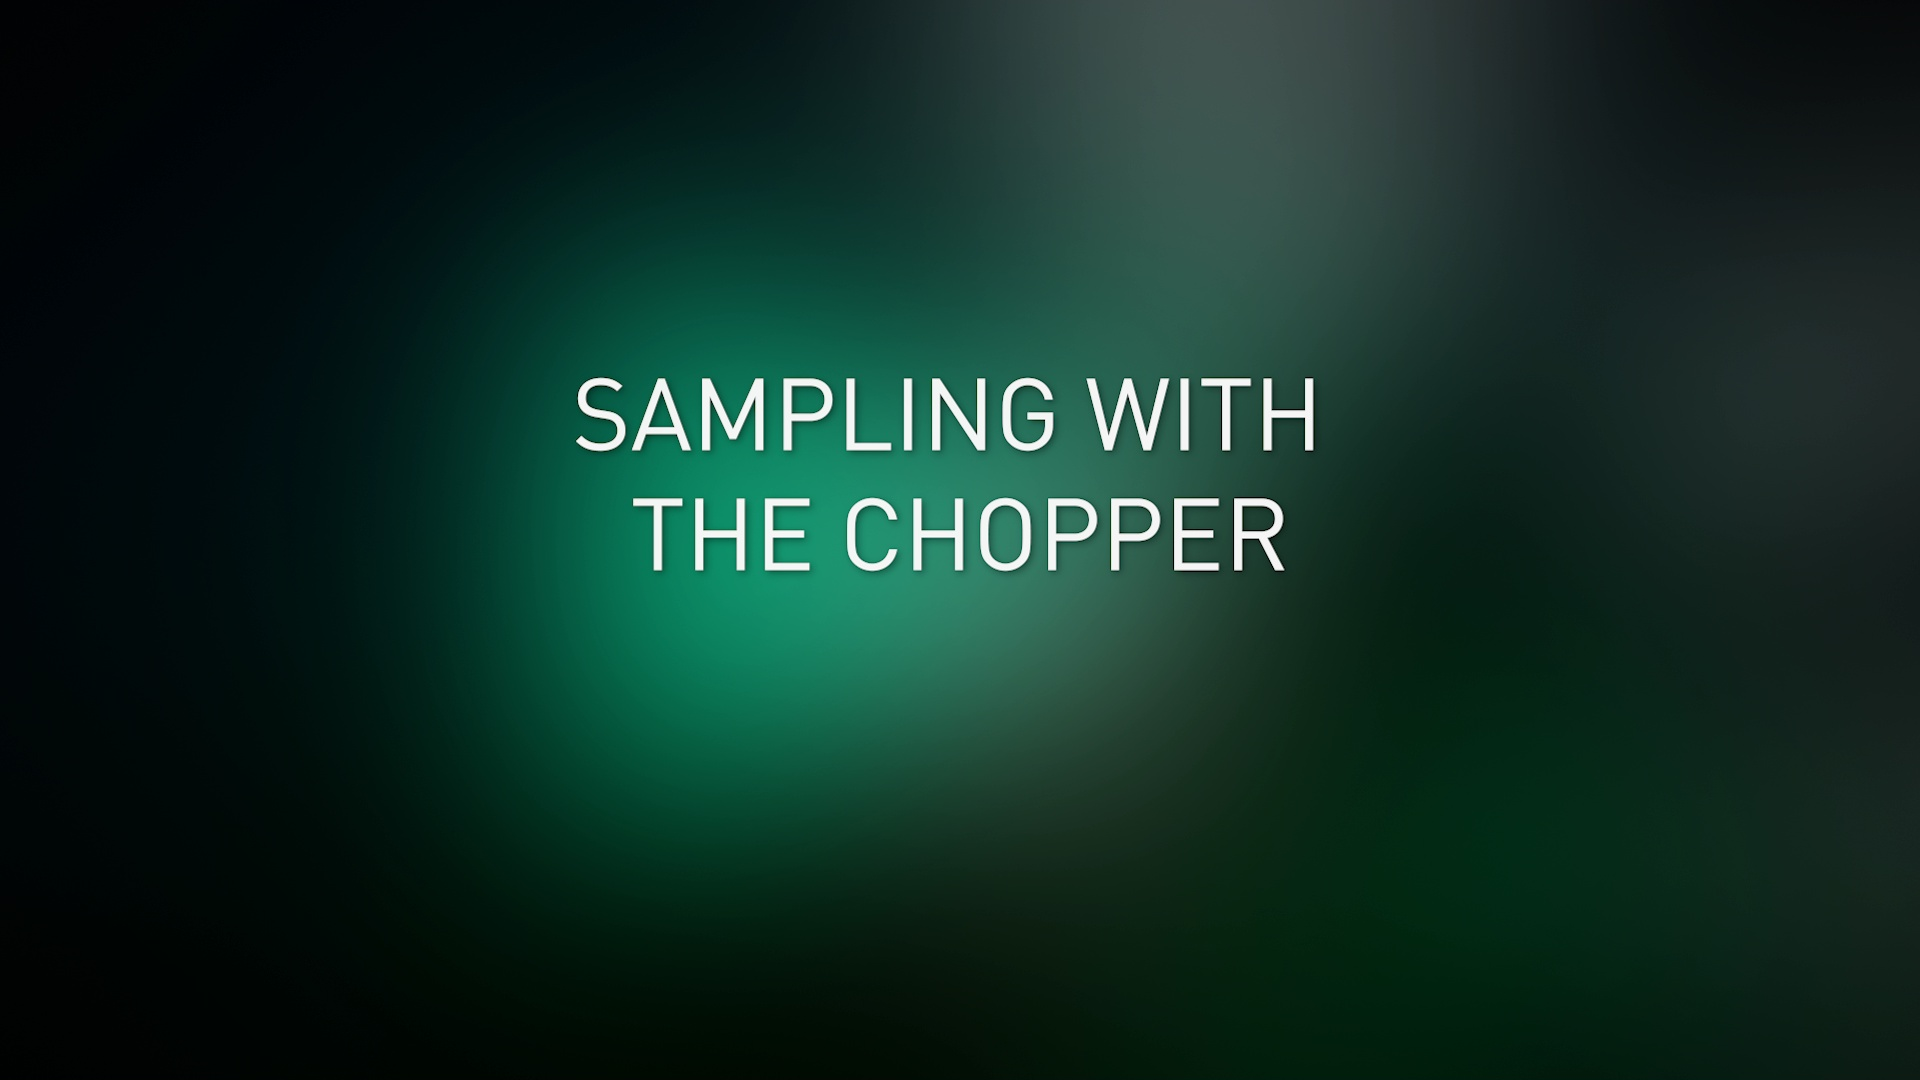 Samplear con Chopper